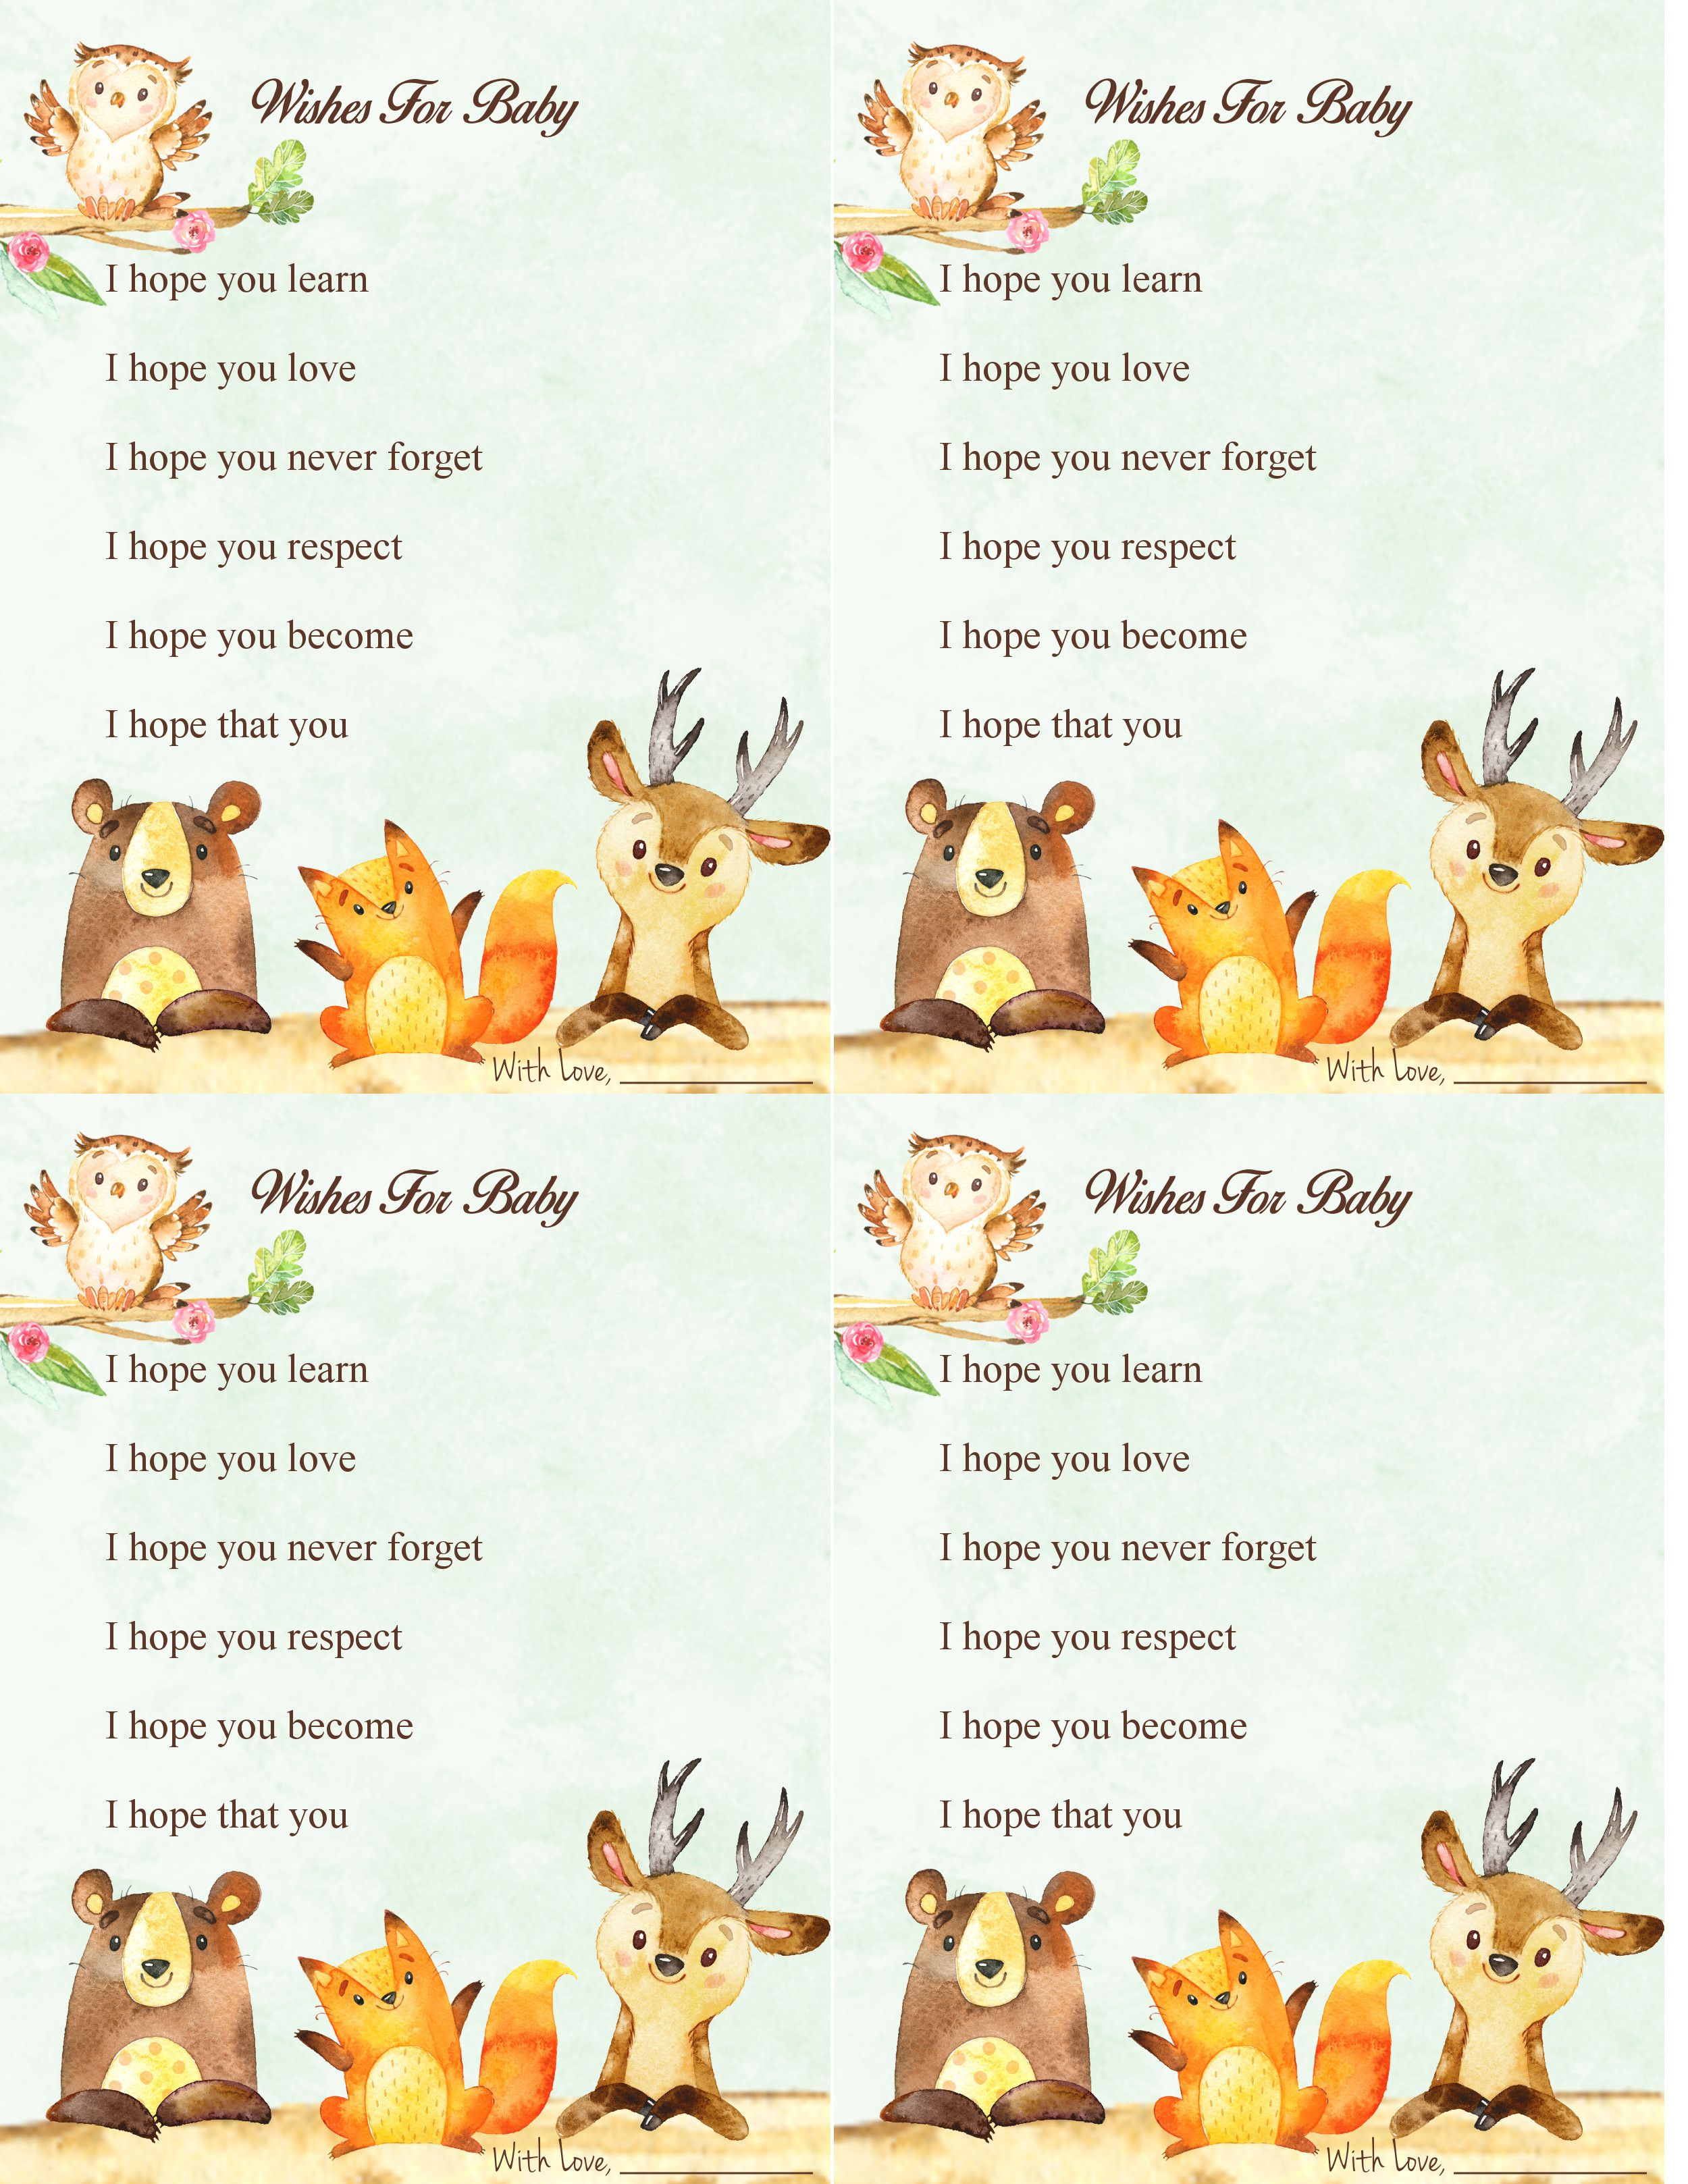 Woodland Forest Animal Baby Shower Game Wishes For Baby